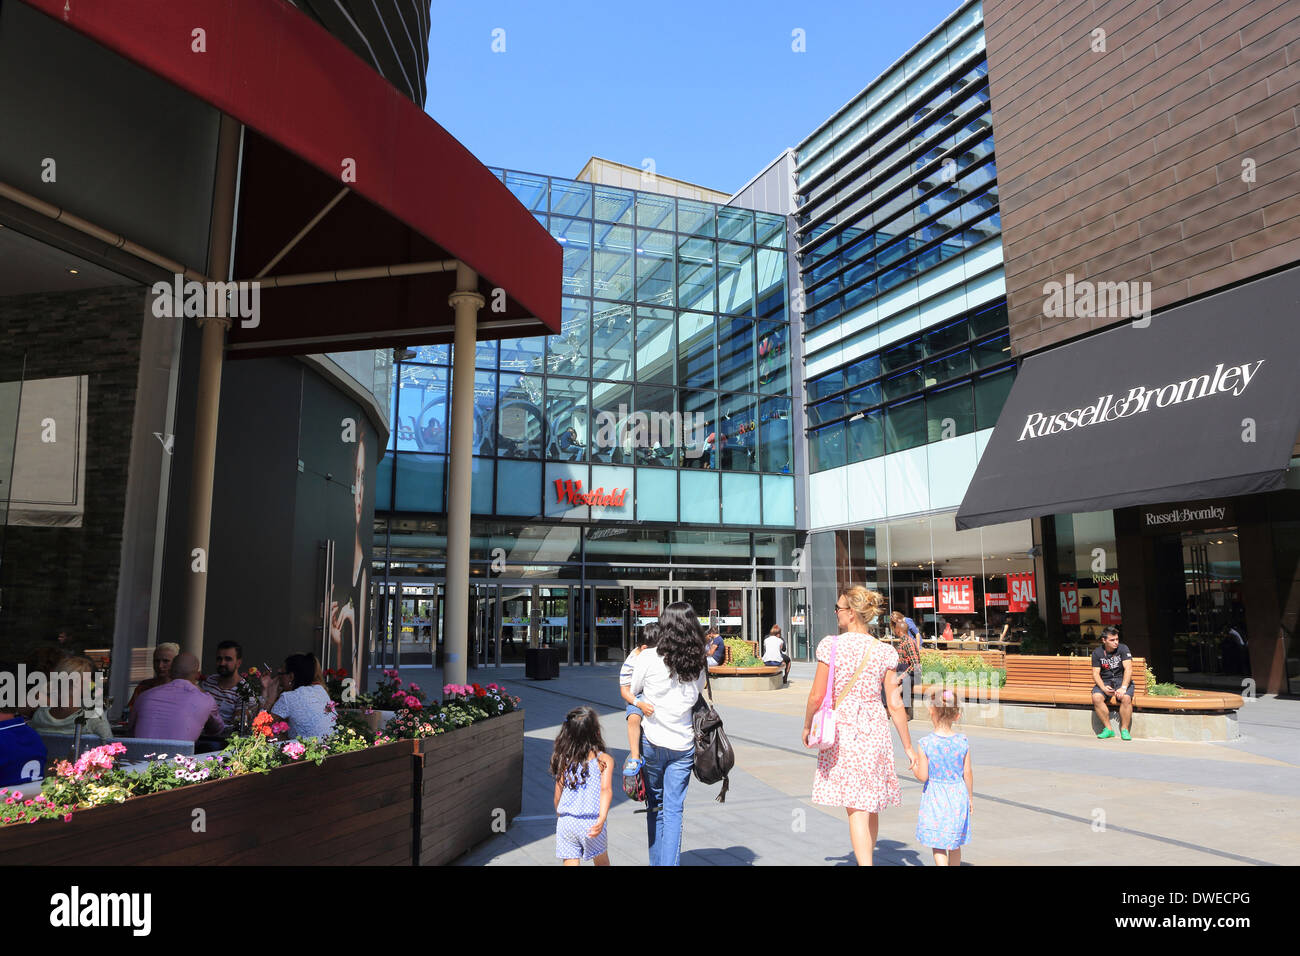 Westfield shopping centre in Stratford, East London E20, England, UK Stock Photo